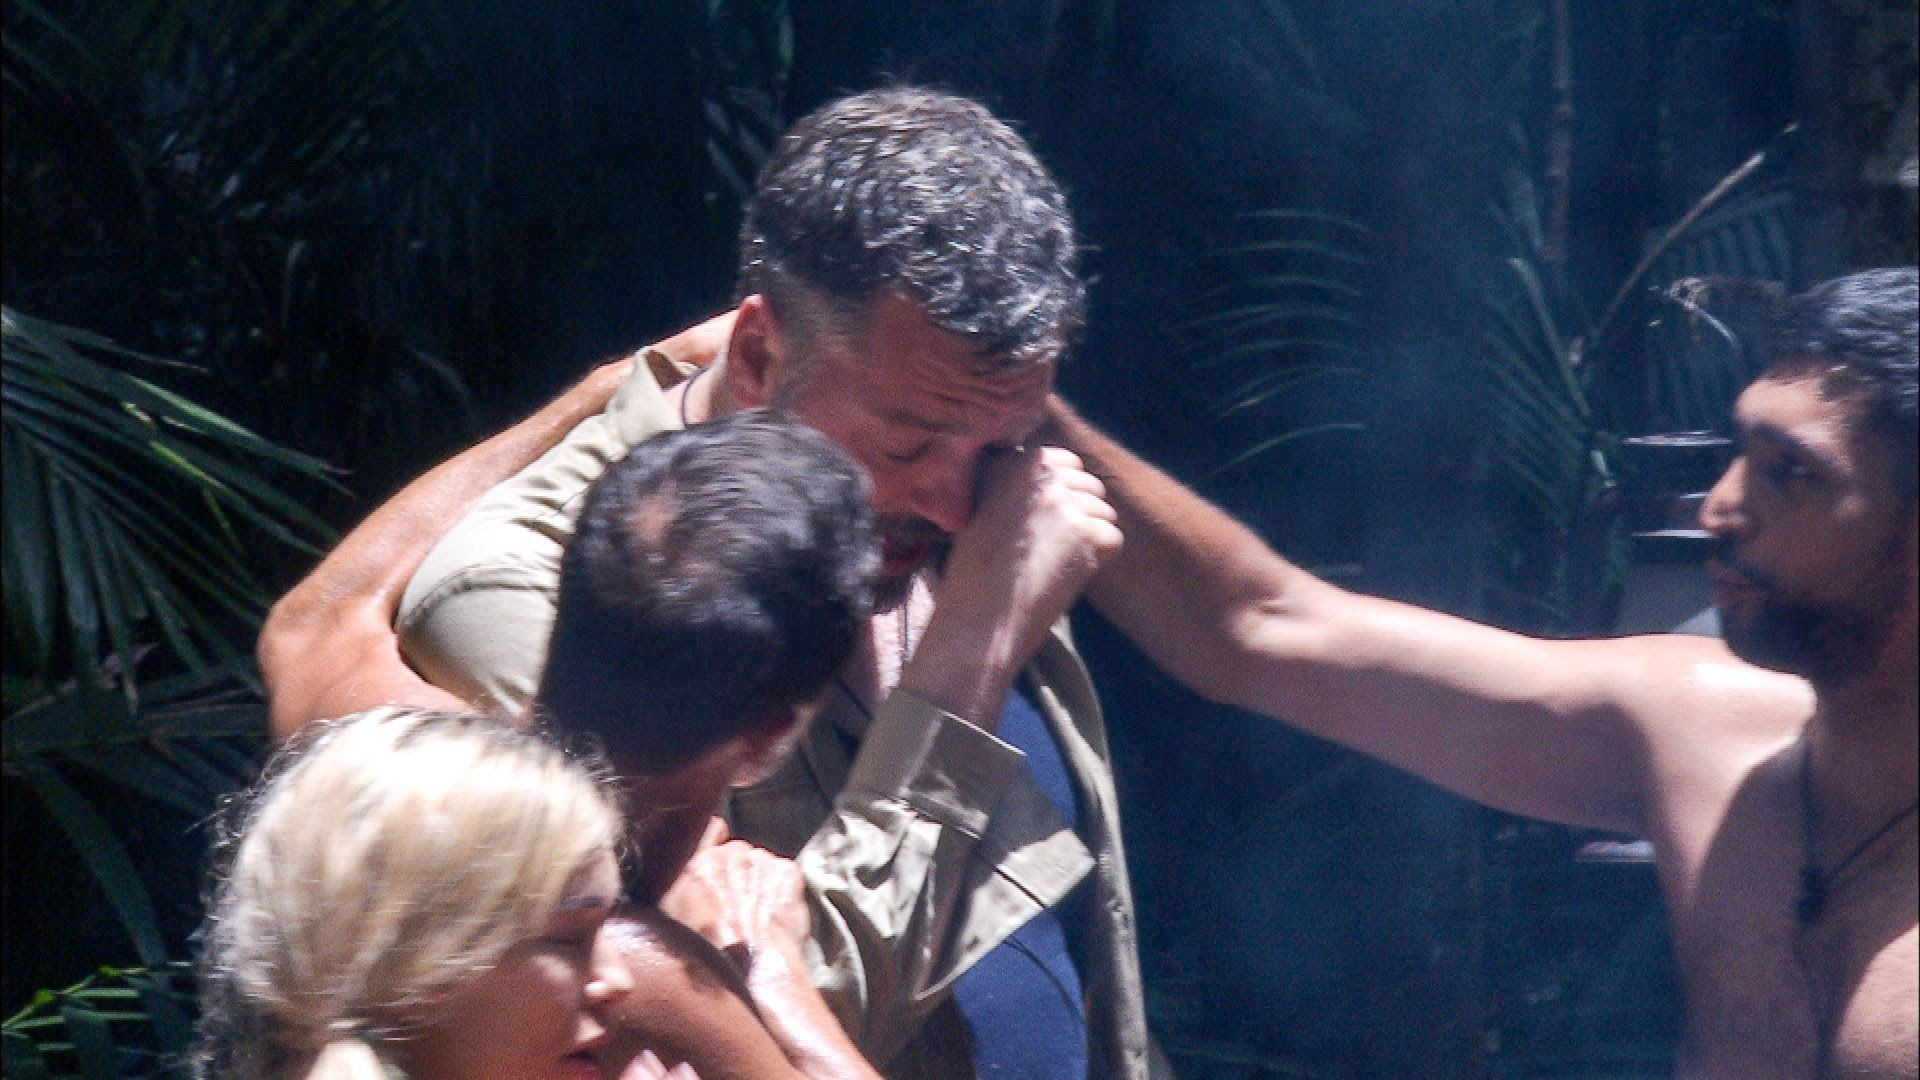 <strong>Iain broke down in tears after one Bushtucker Trial</strong>